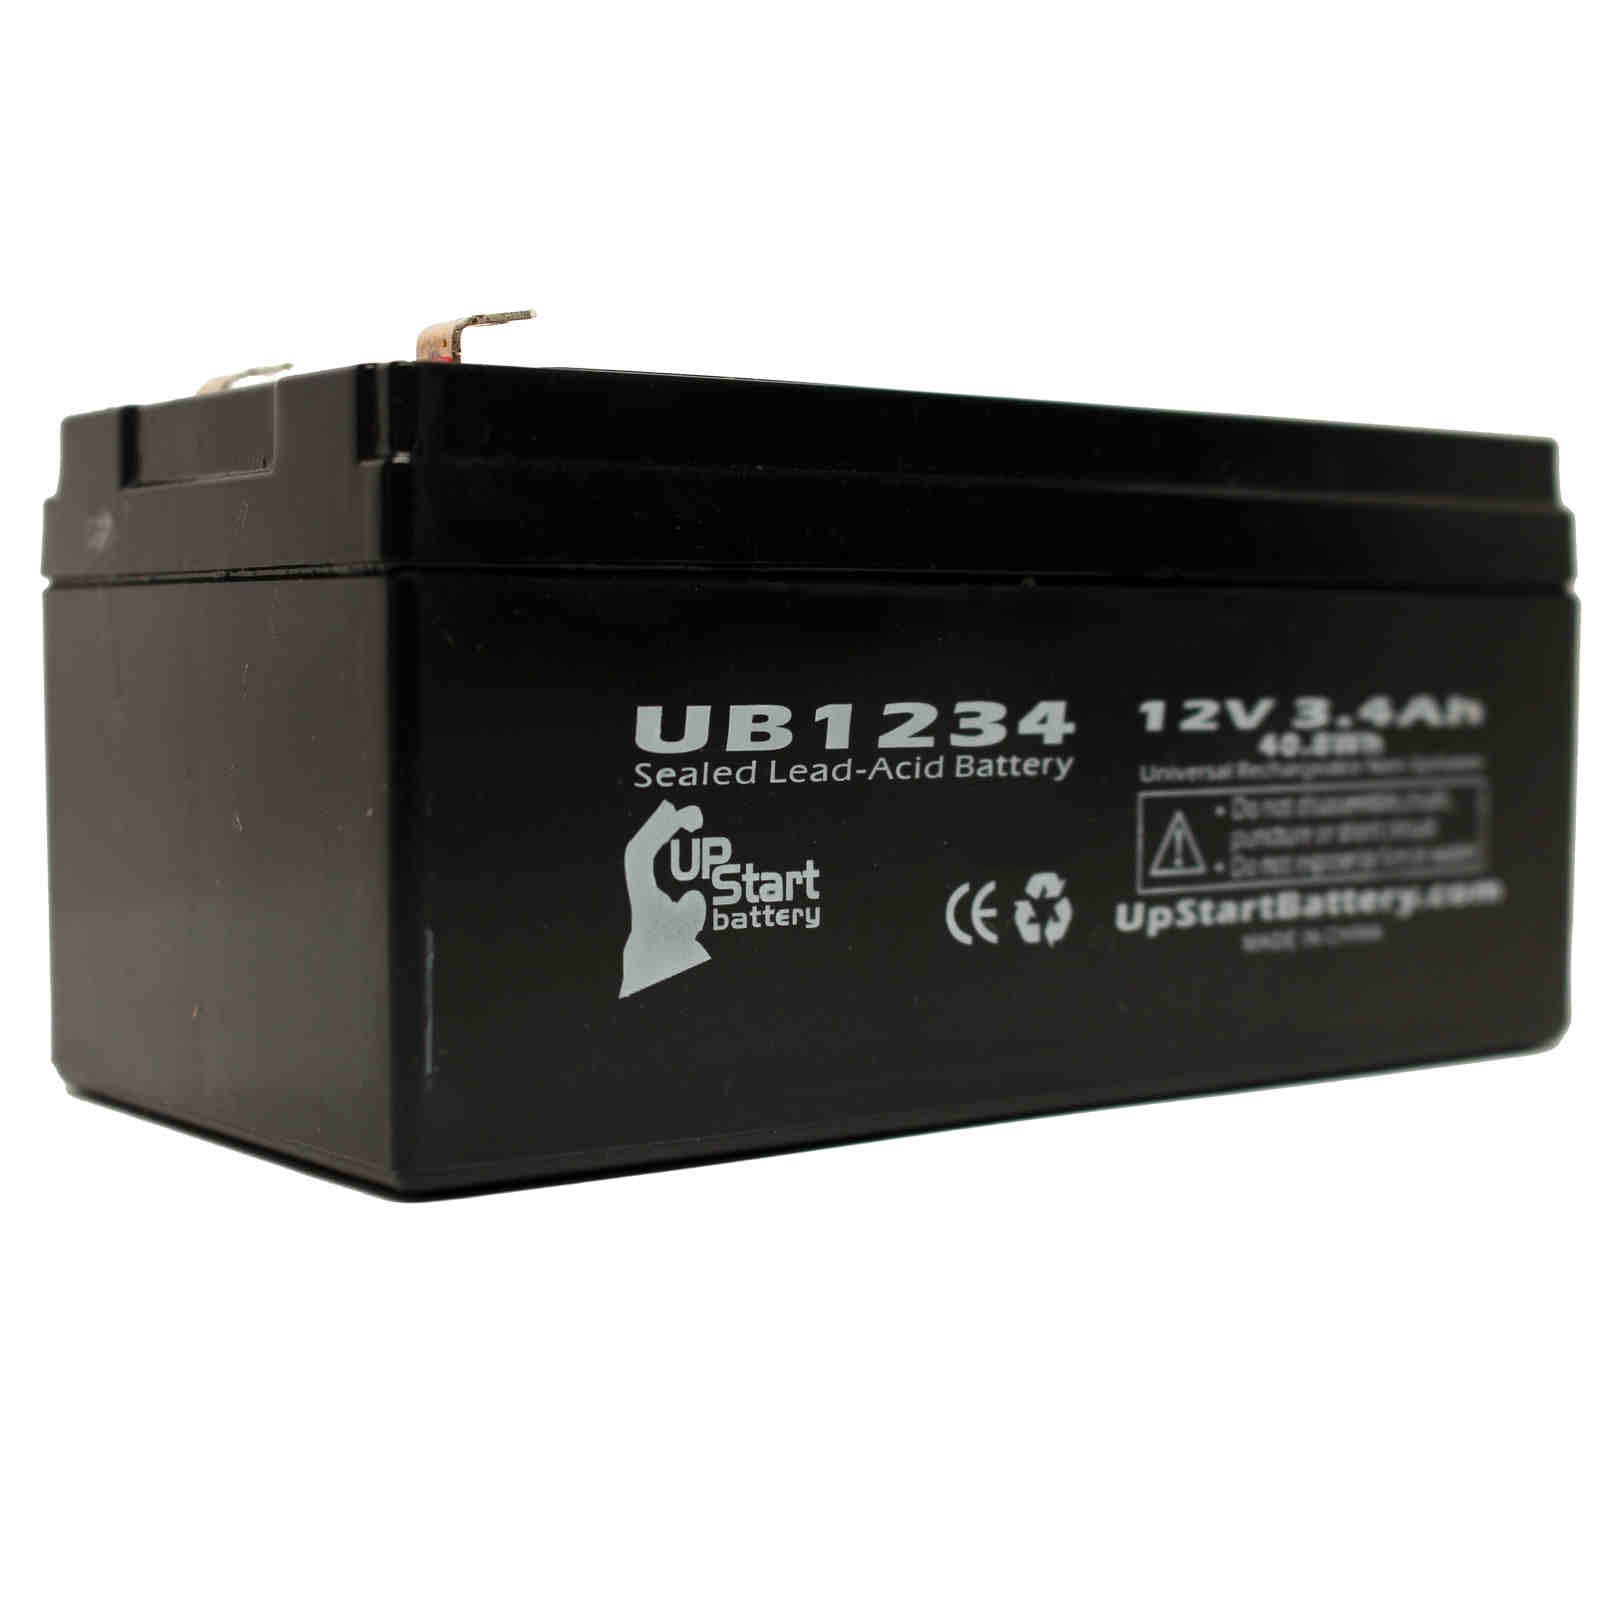 APC 35 Battery Replacement - UB1234 Universal Sealed Lead Acid Battery (12V, 3.4Ah, 3400mAh, F1 Terminal, AGM, SLA) - Includes TWO F1 to F2 Terminal Adapters - image 2 de 4